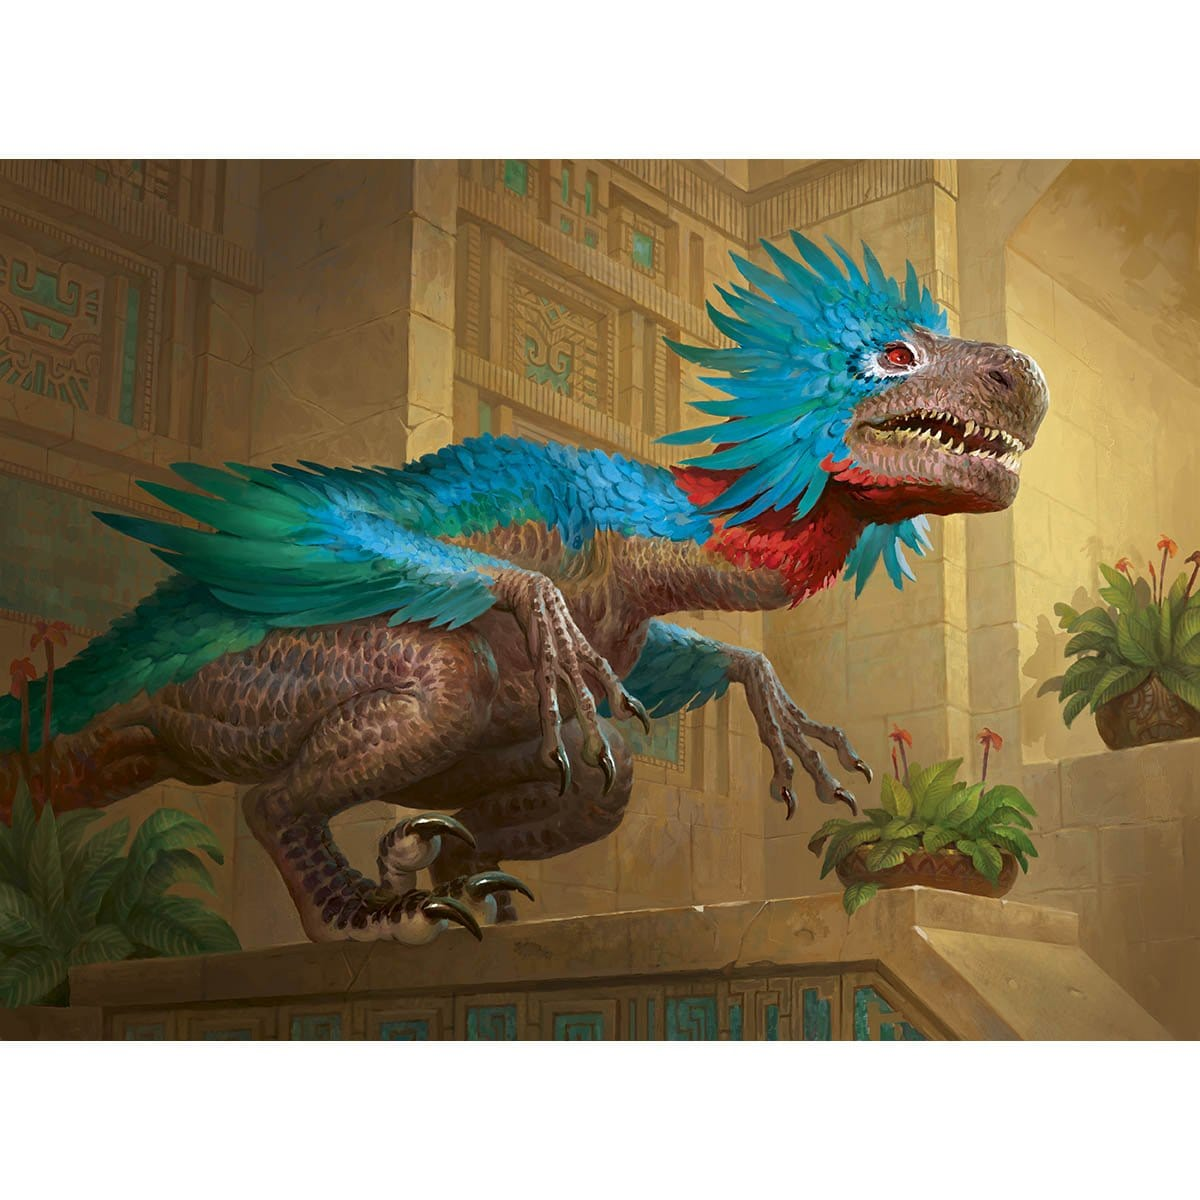 Orazca Raptor Print - Print - Original Magic Art - Accessories for Magic the Gathering and other card games